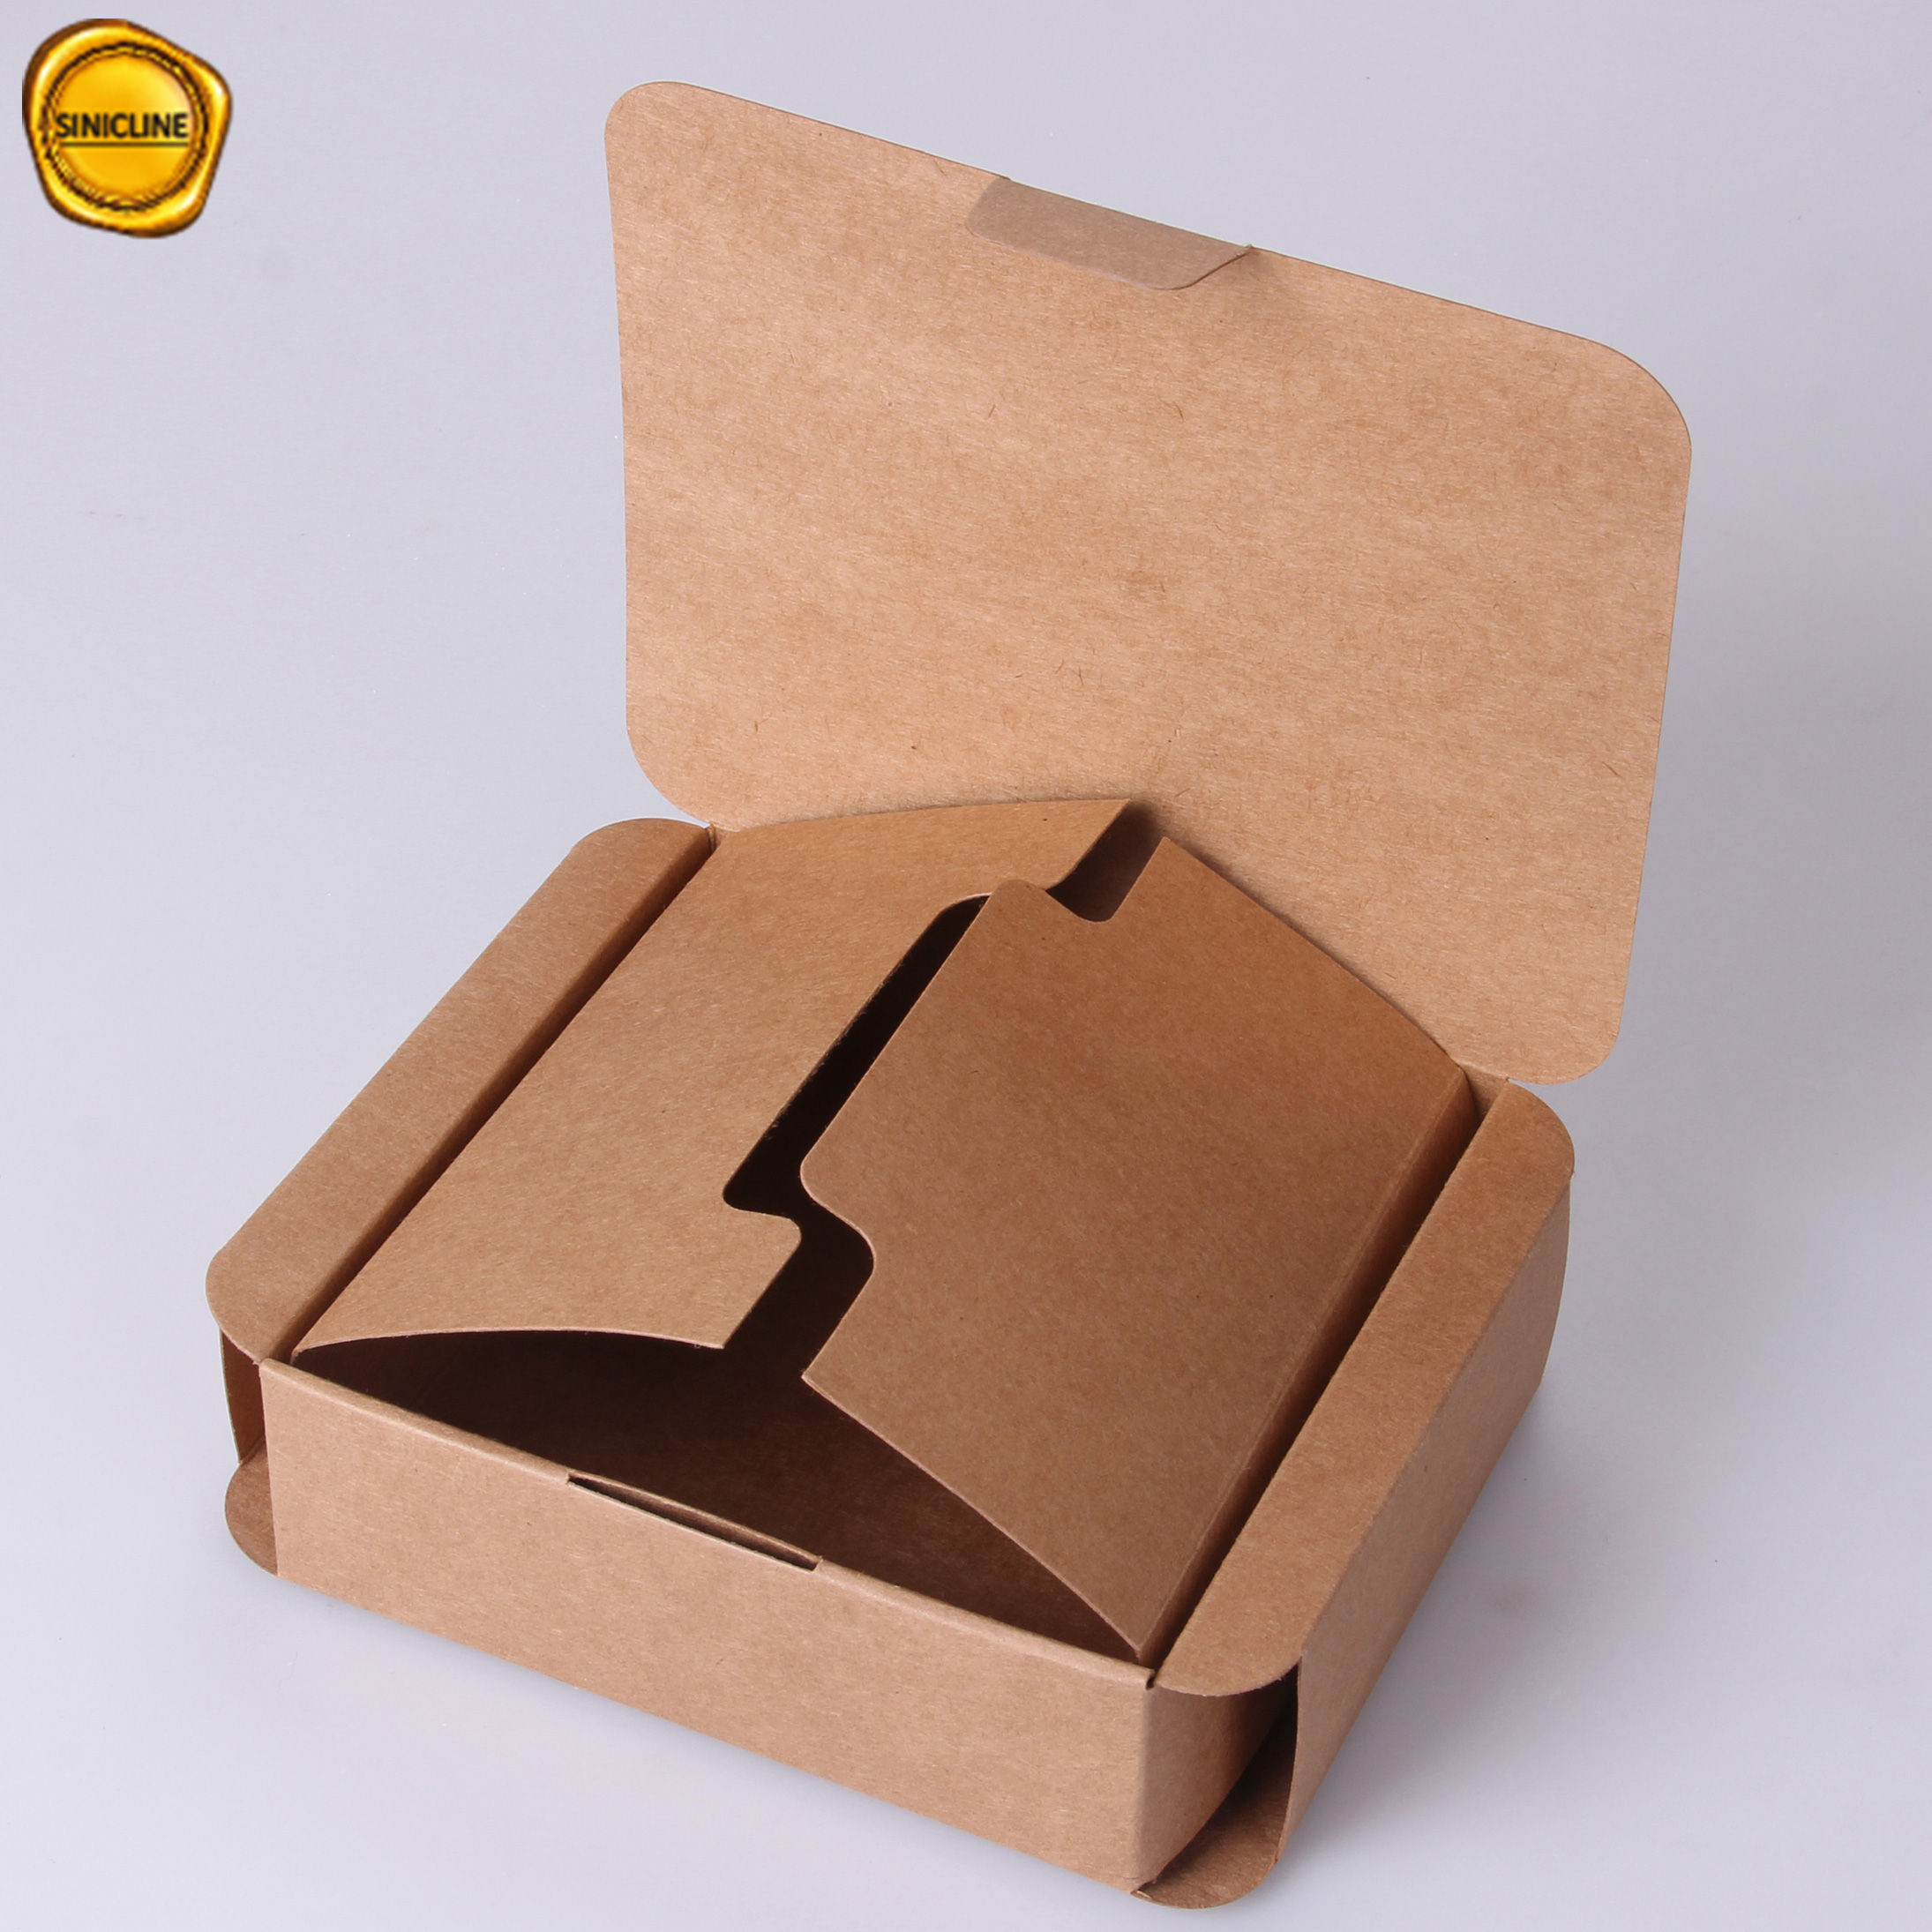 Sinicline Custom Kraft Paper Box Small Cardboard Packaging For Gifts